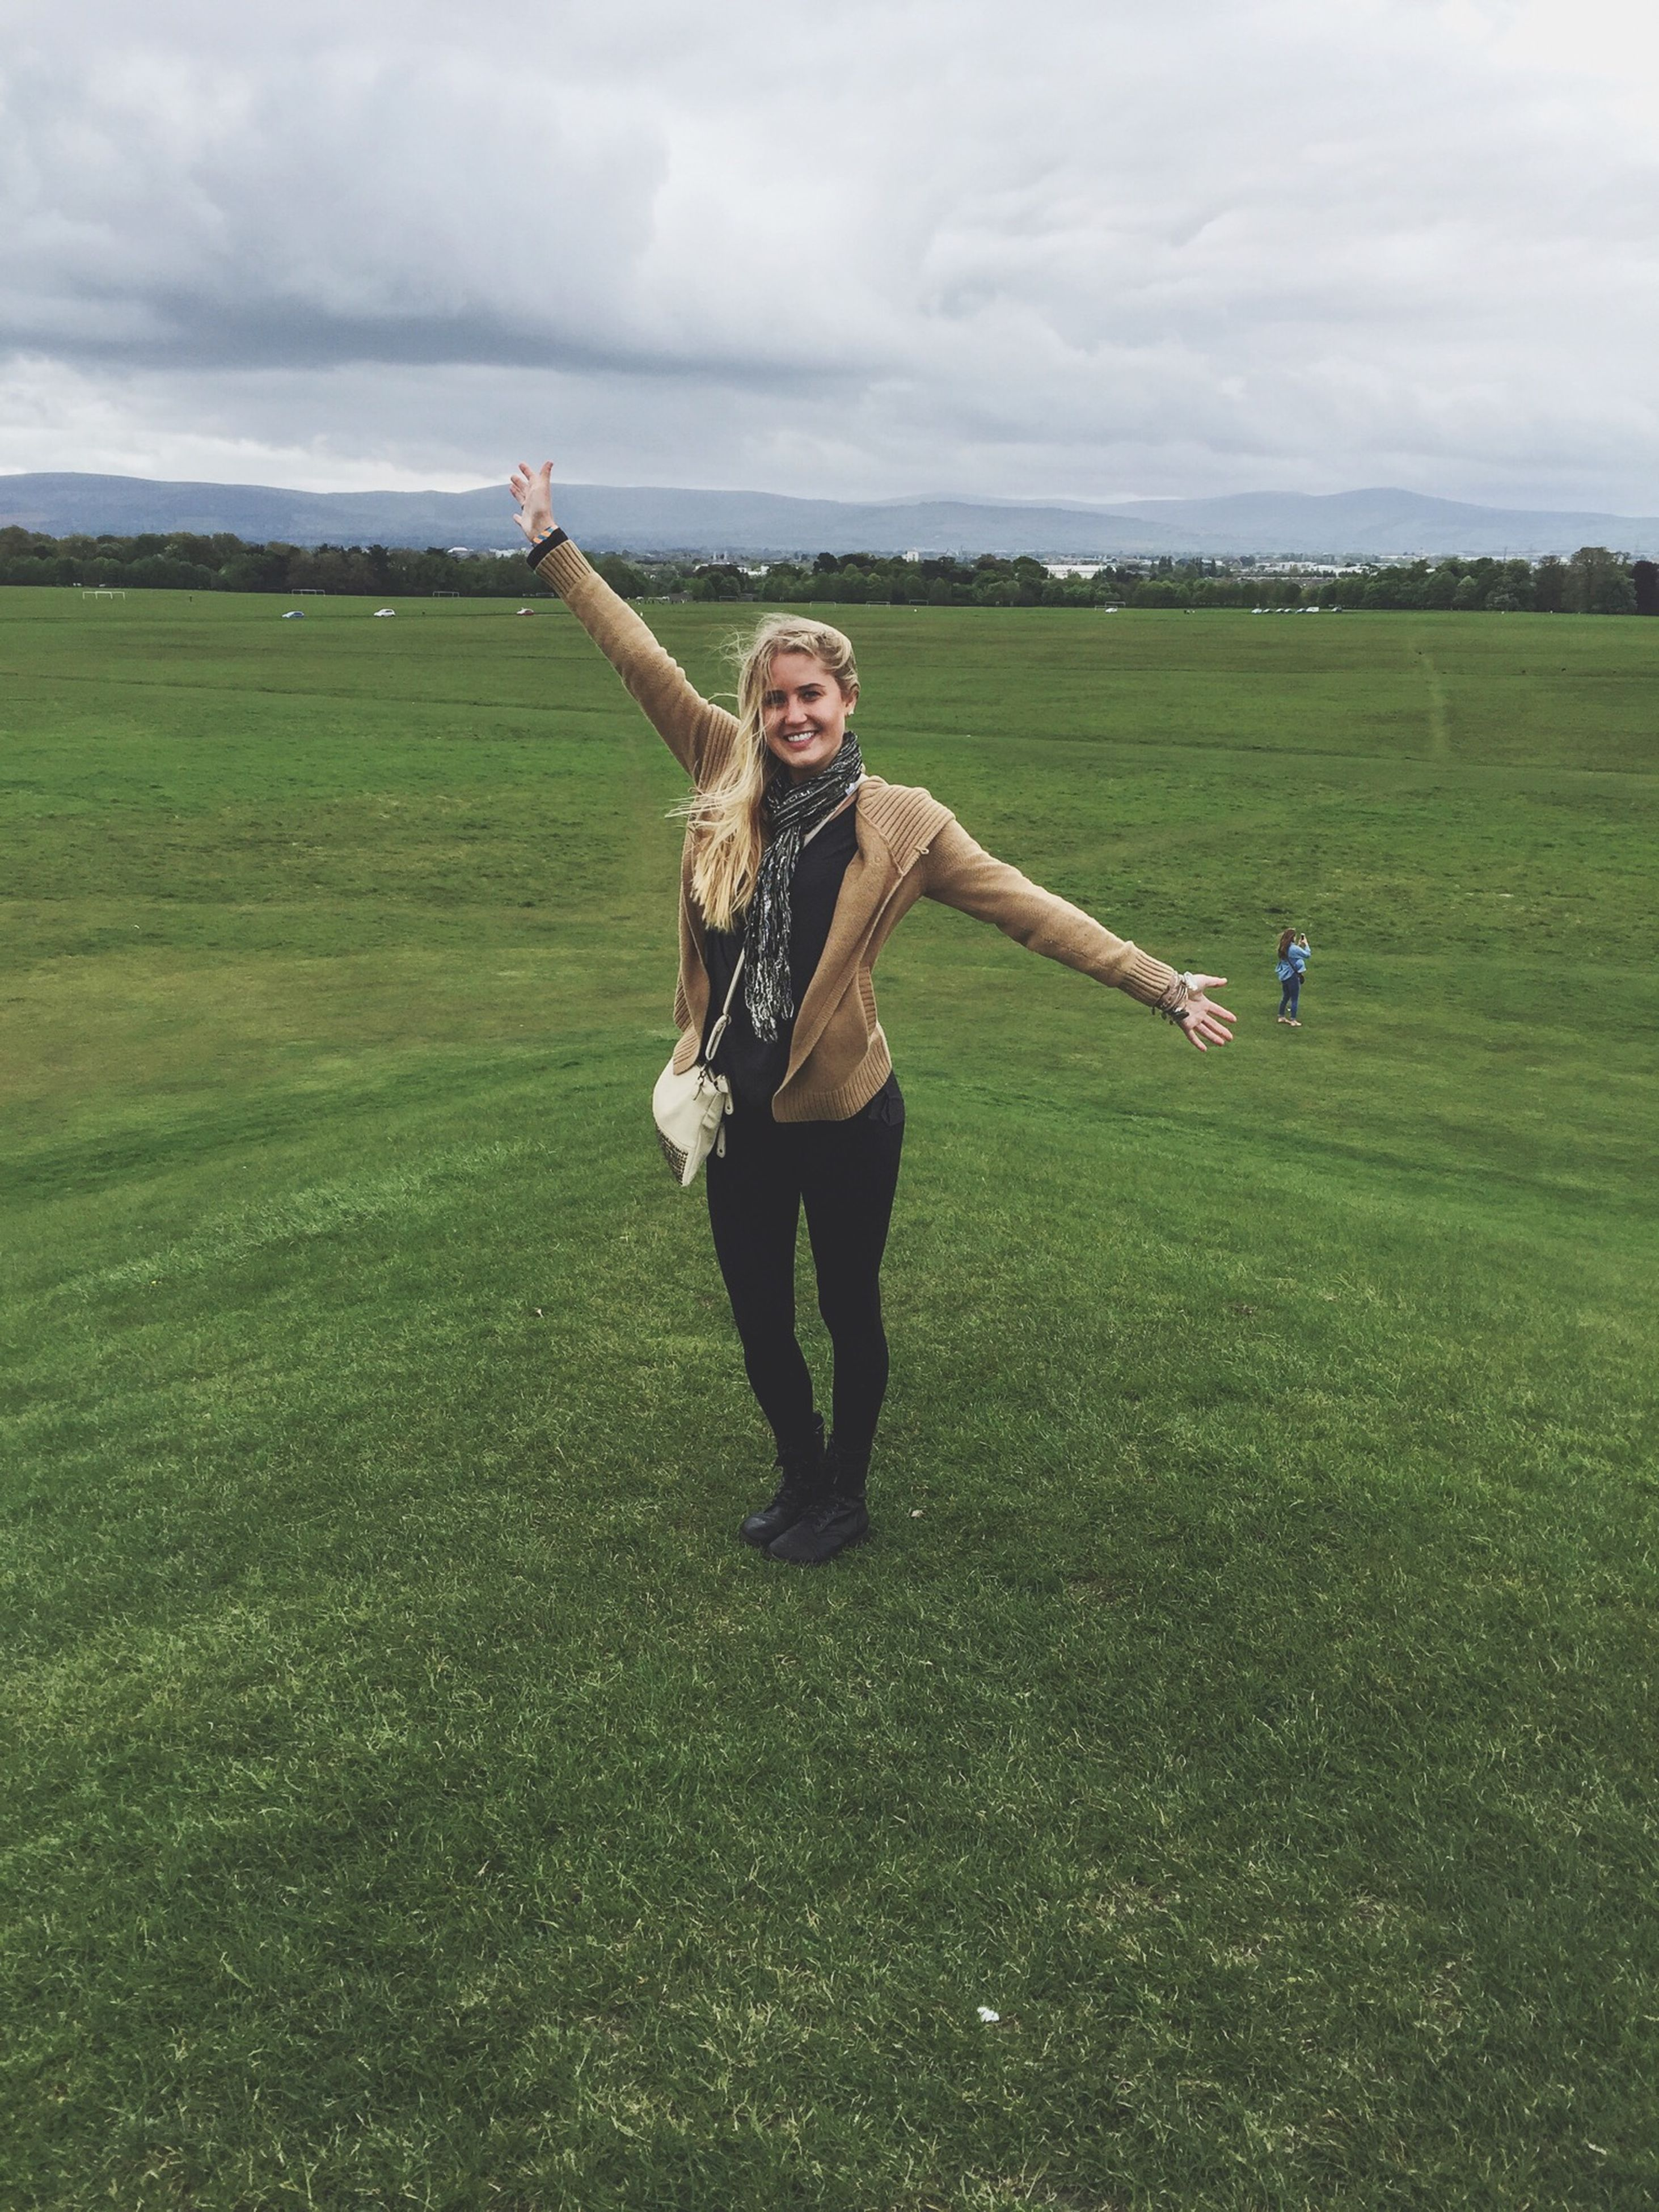 full length, grass, person, lifestyles, young adult, leisure activity, casual clothing, sky, field, happiness, young women, smiling, portrait, standing, looking at camera, front view, grassy, cloud - sky